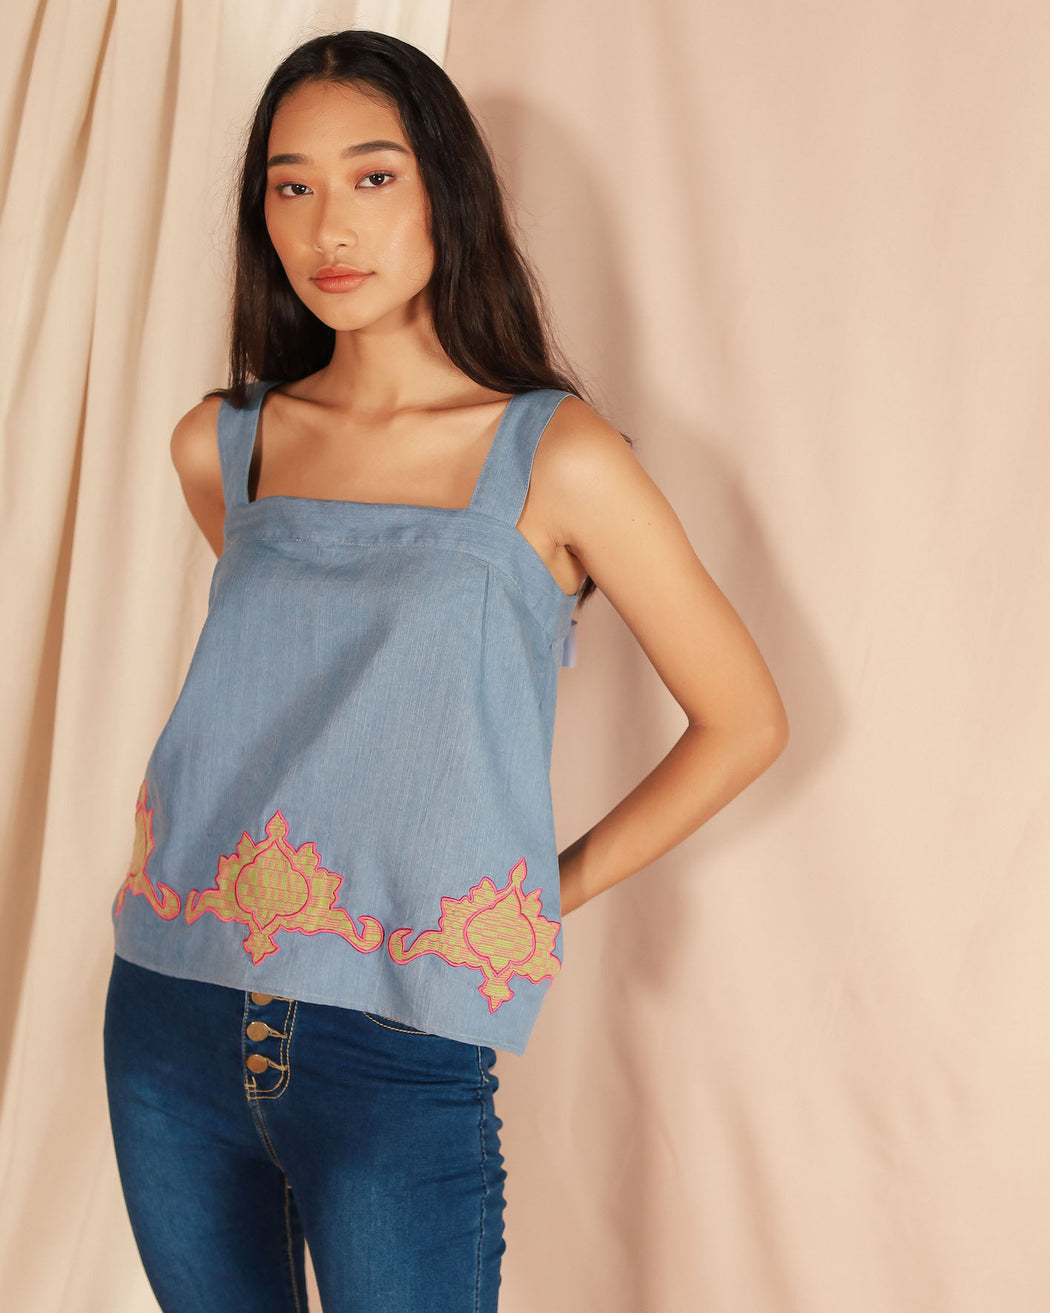 Mayumi Spaghetti Strap Blouse - Denim  with Green Inabel (Tilia x Balay ni Atong)